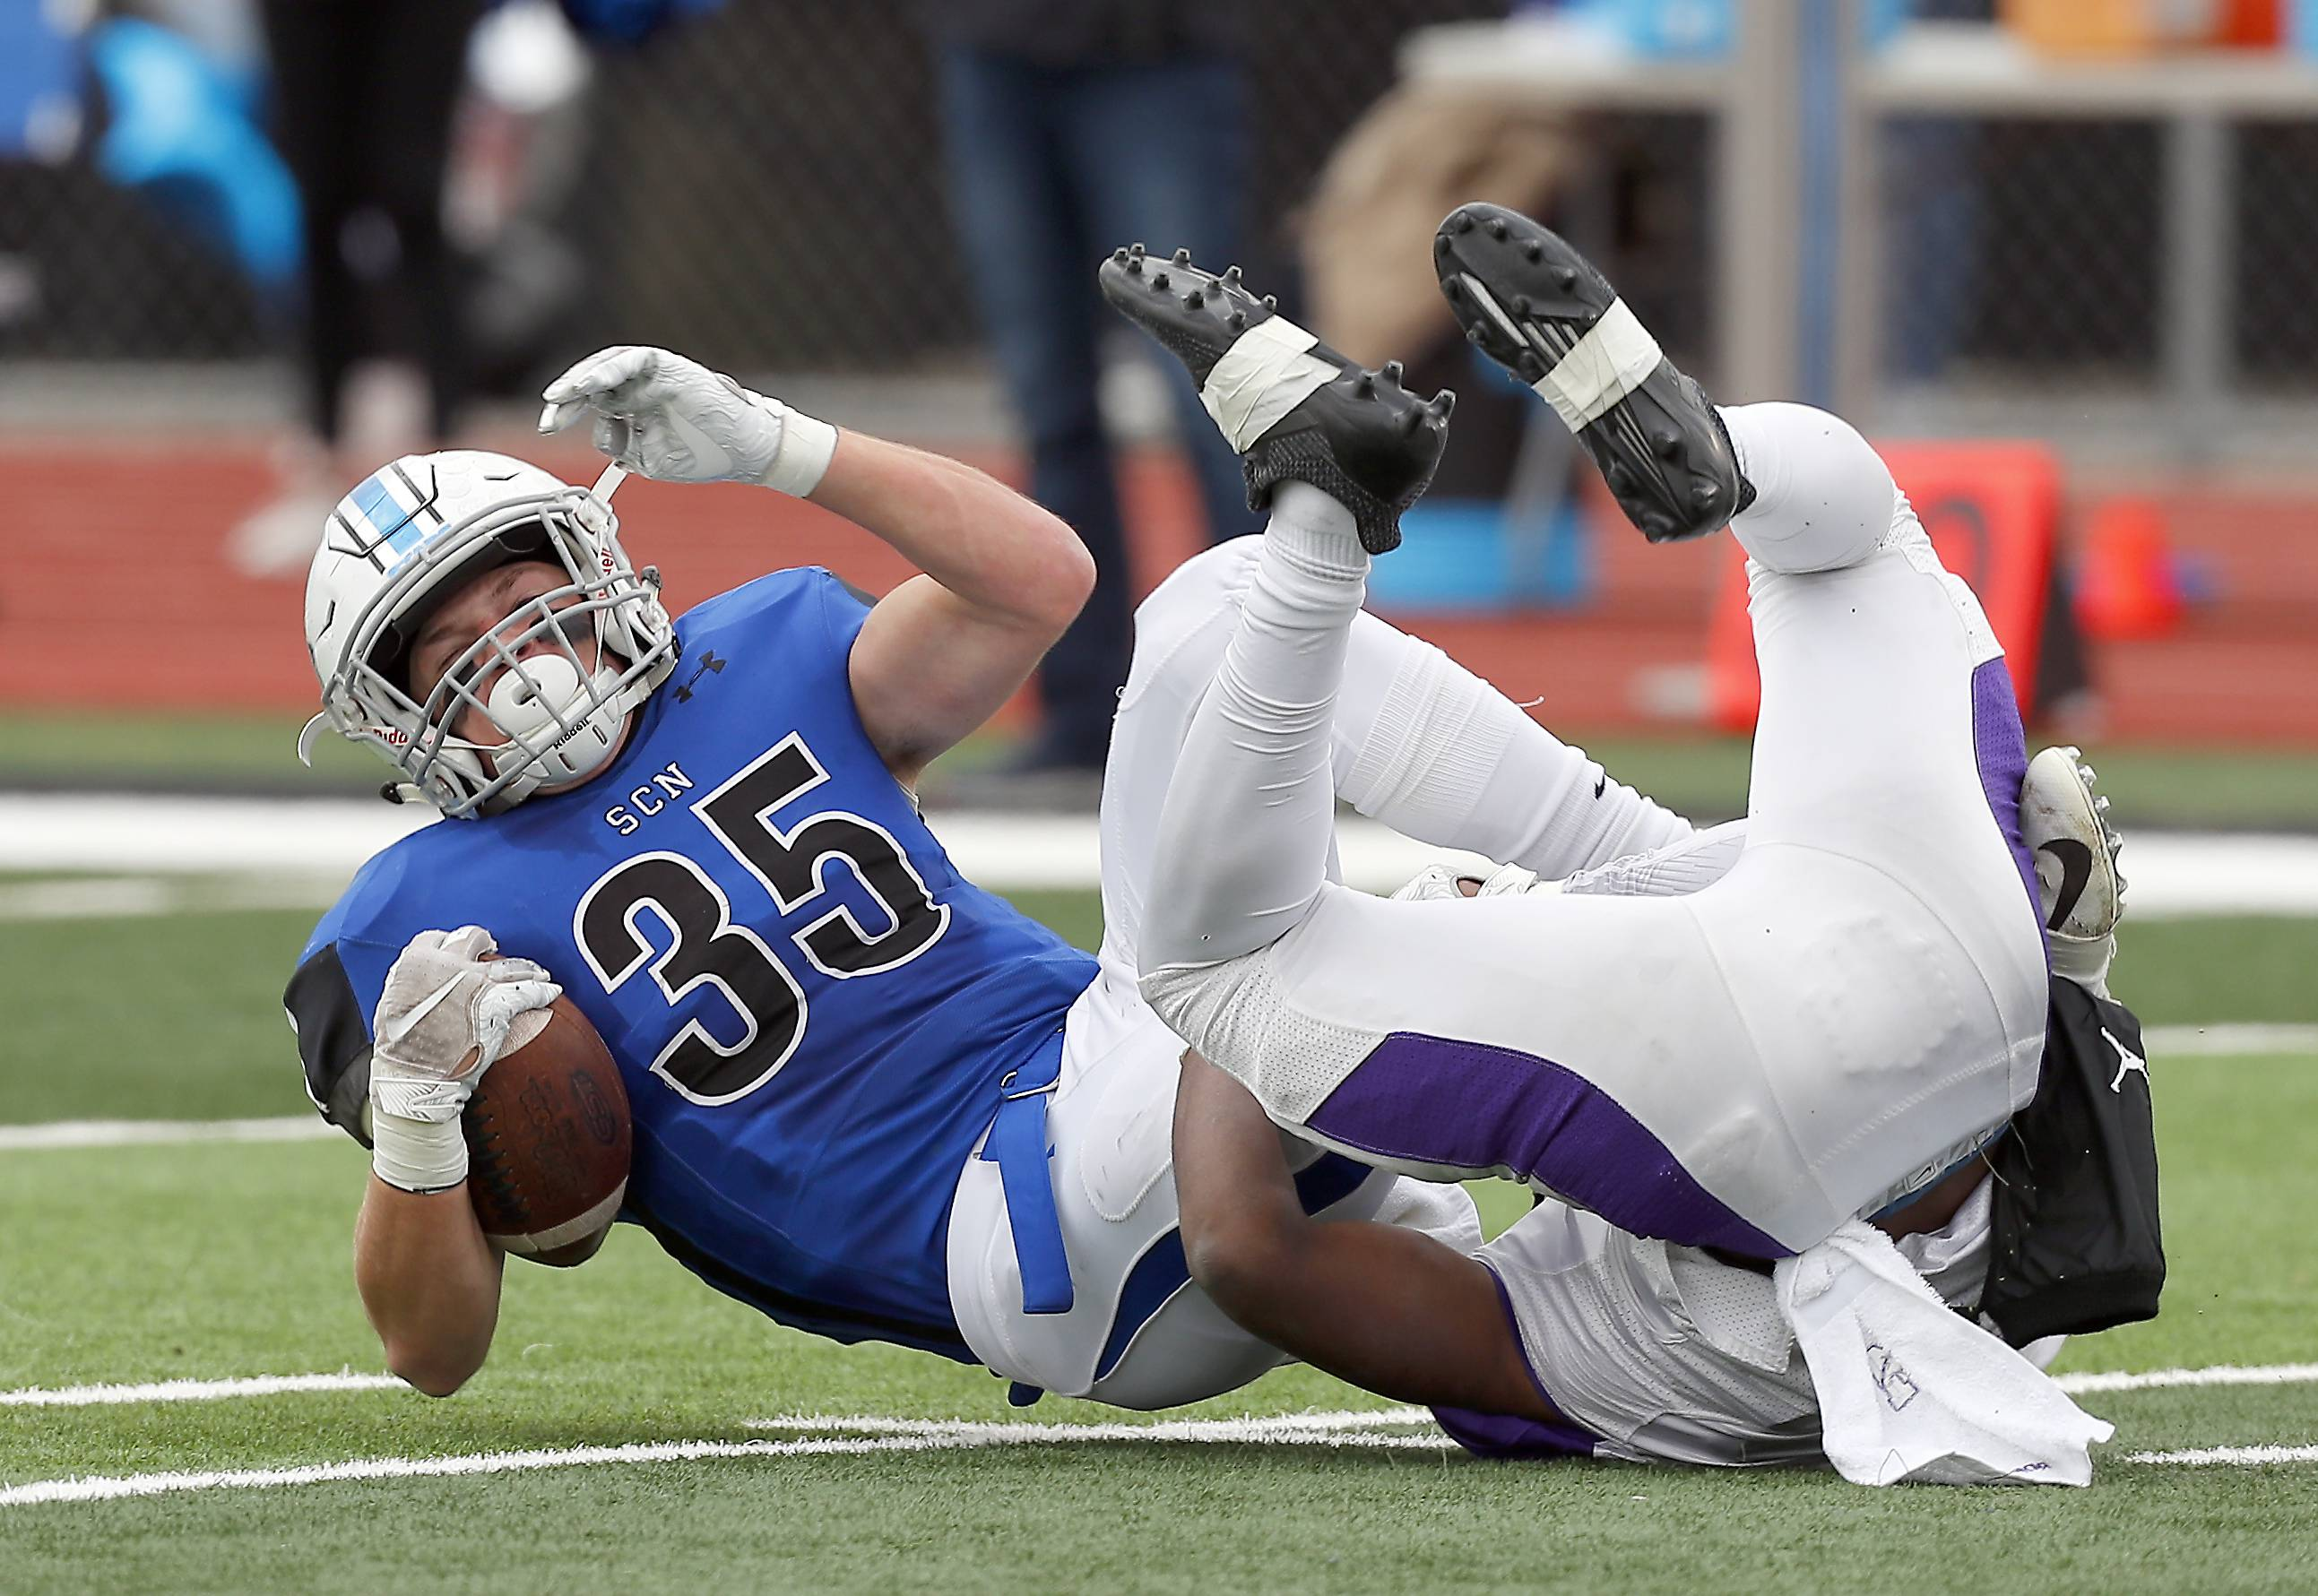 St. Charles North's Nicholas DeMarco (35) Saturday during IHSA Class 7A playoff football in St. Charles.